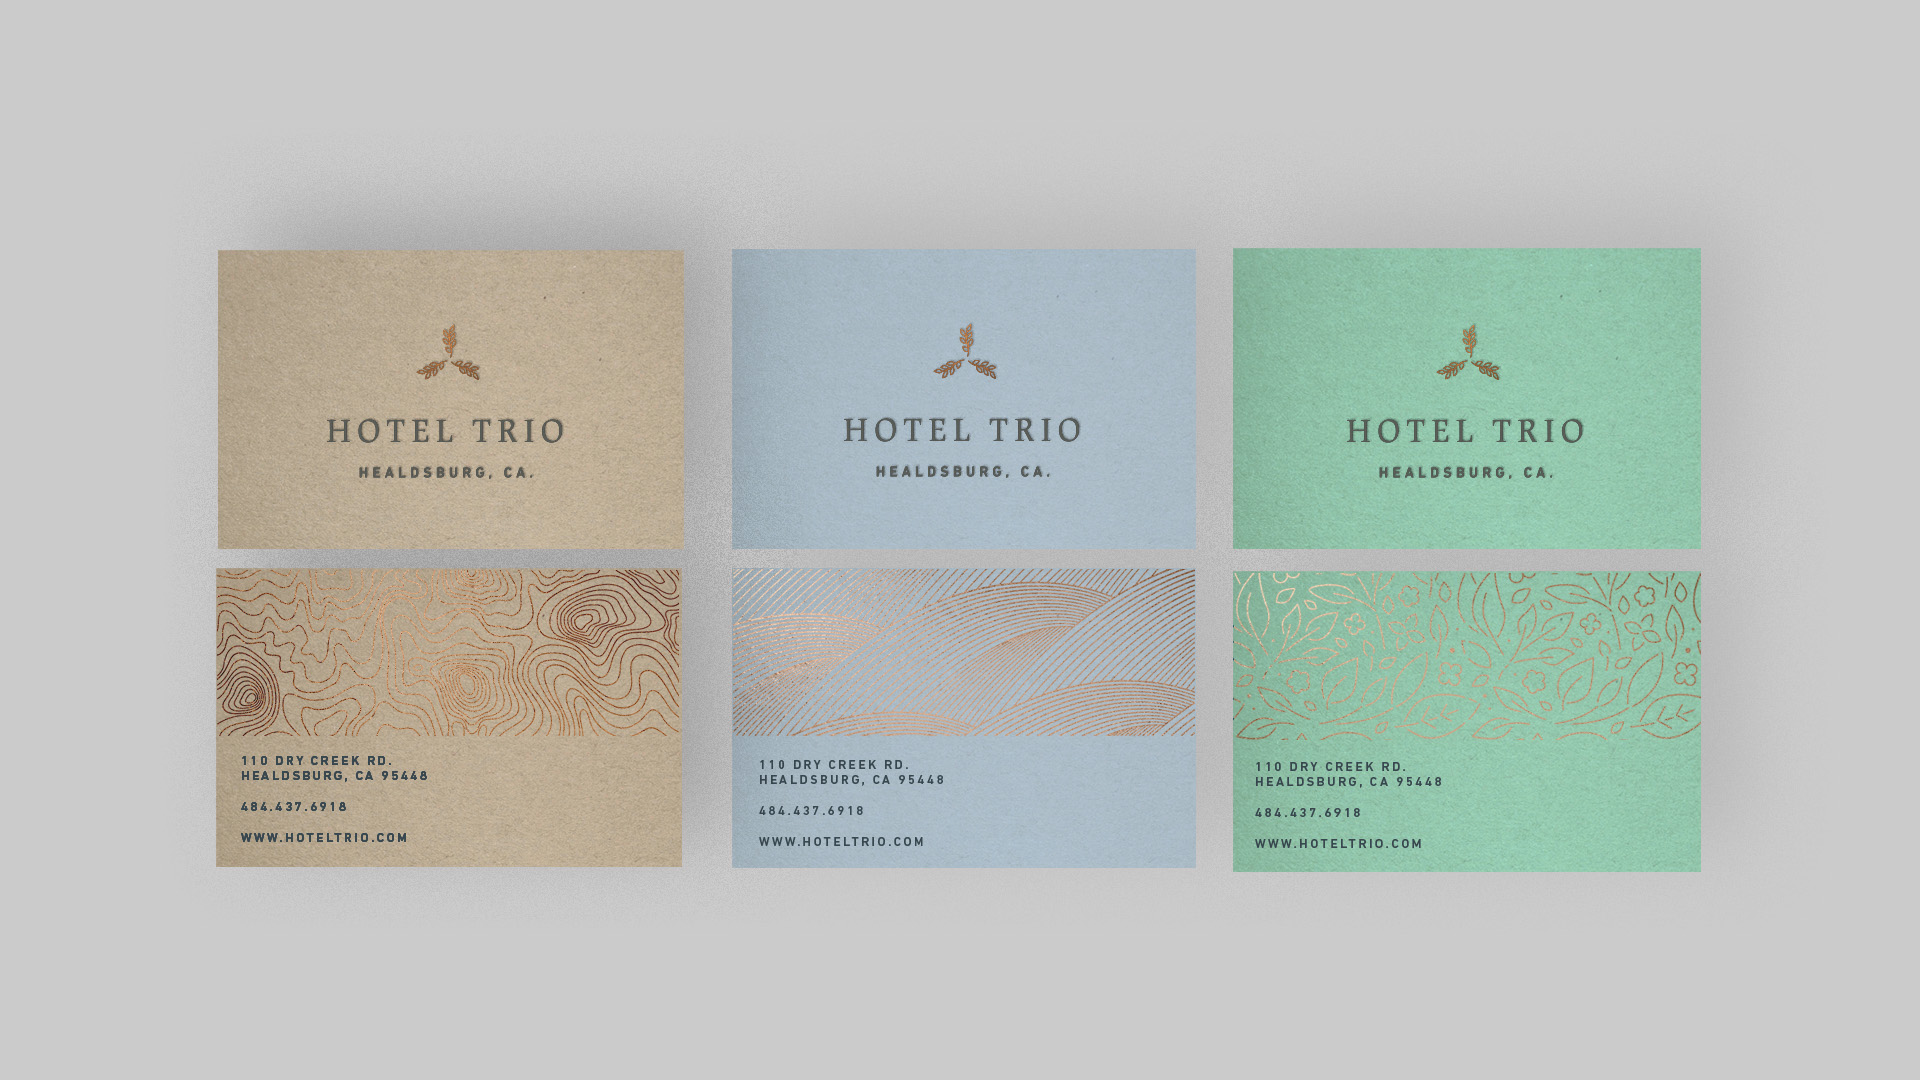 Hotel Trio [hospitality] {coming soon}